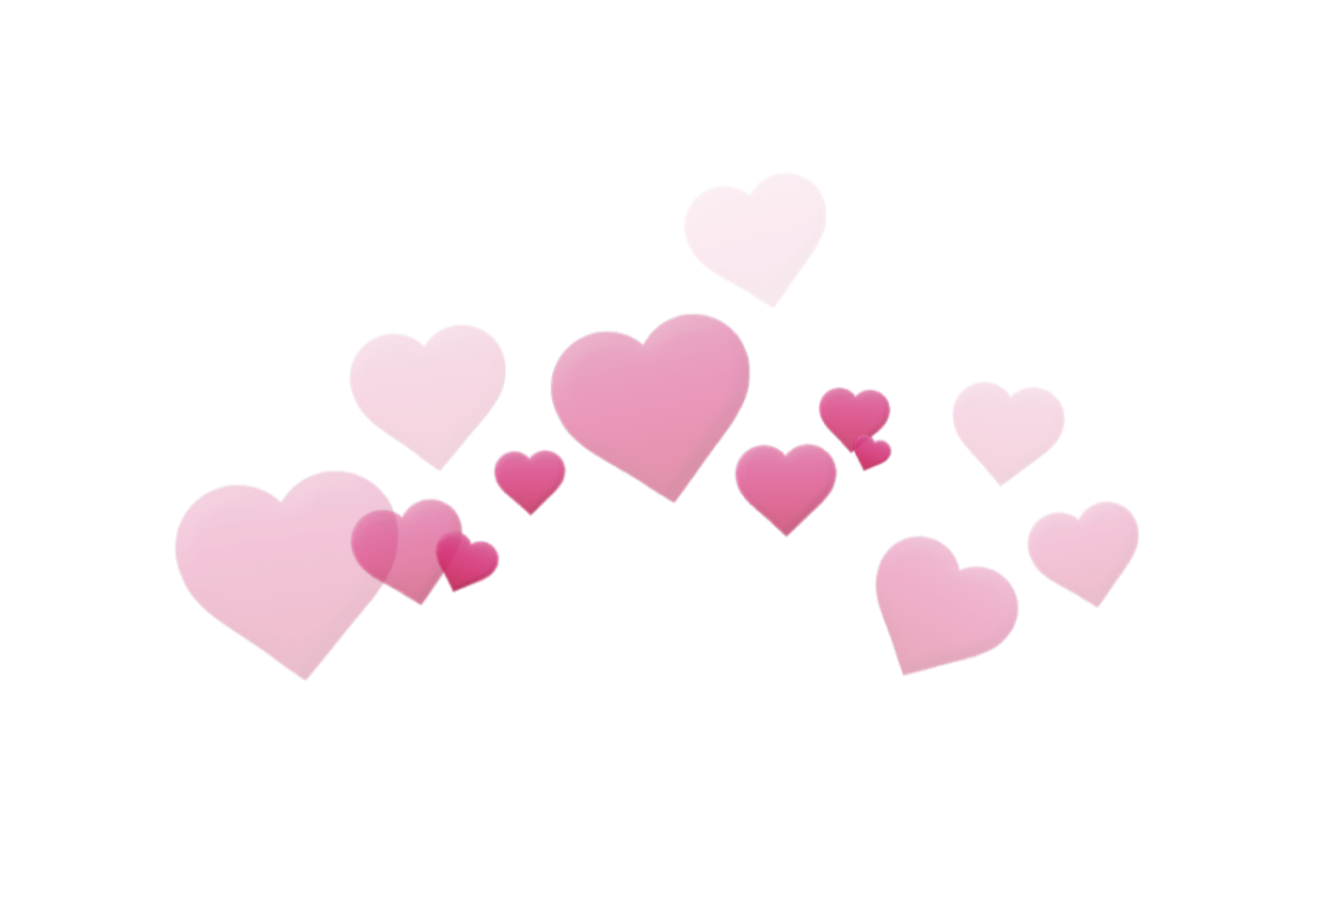 svg transparent stock heart heartcrown crown cute pink tumblr